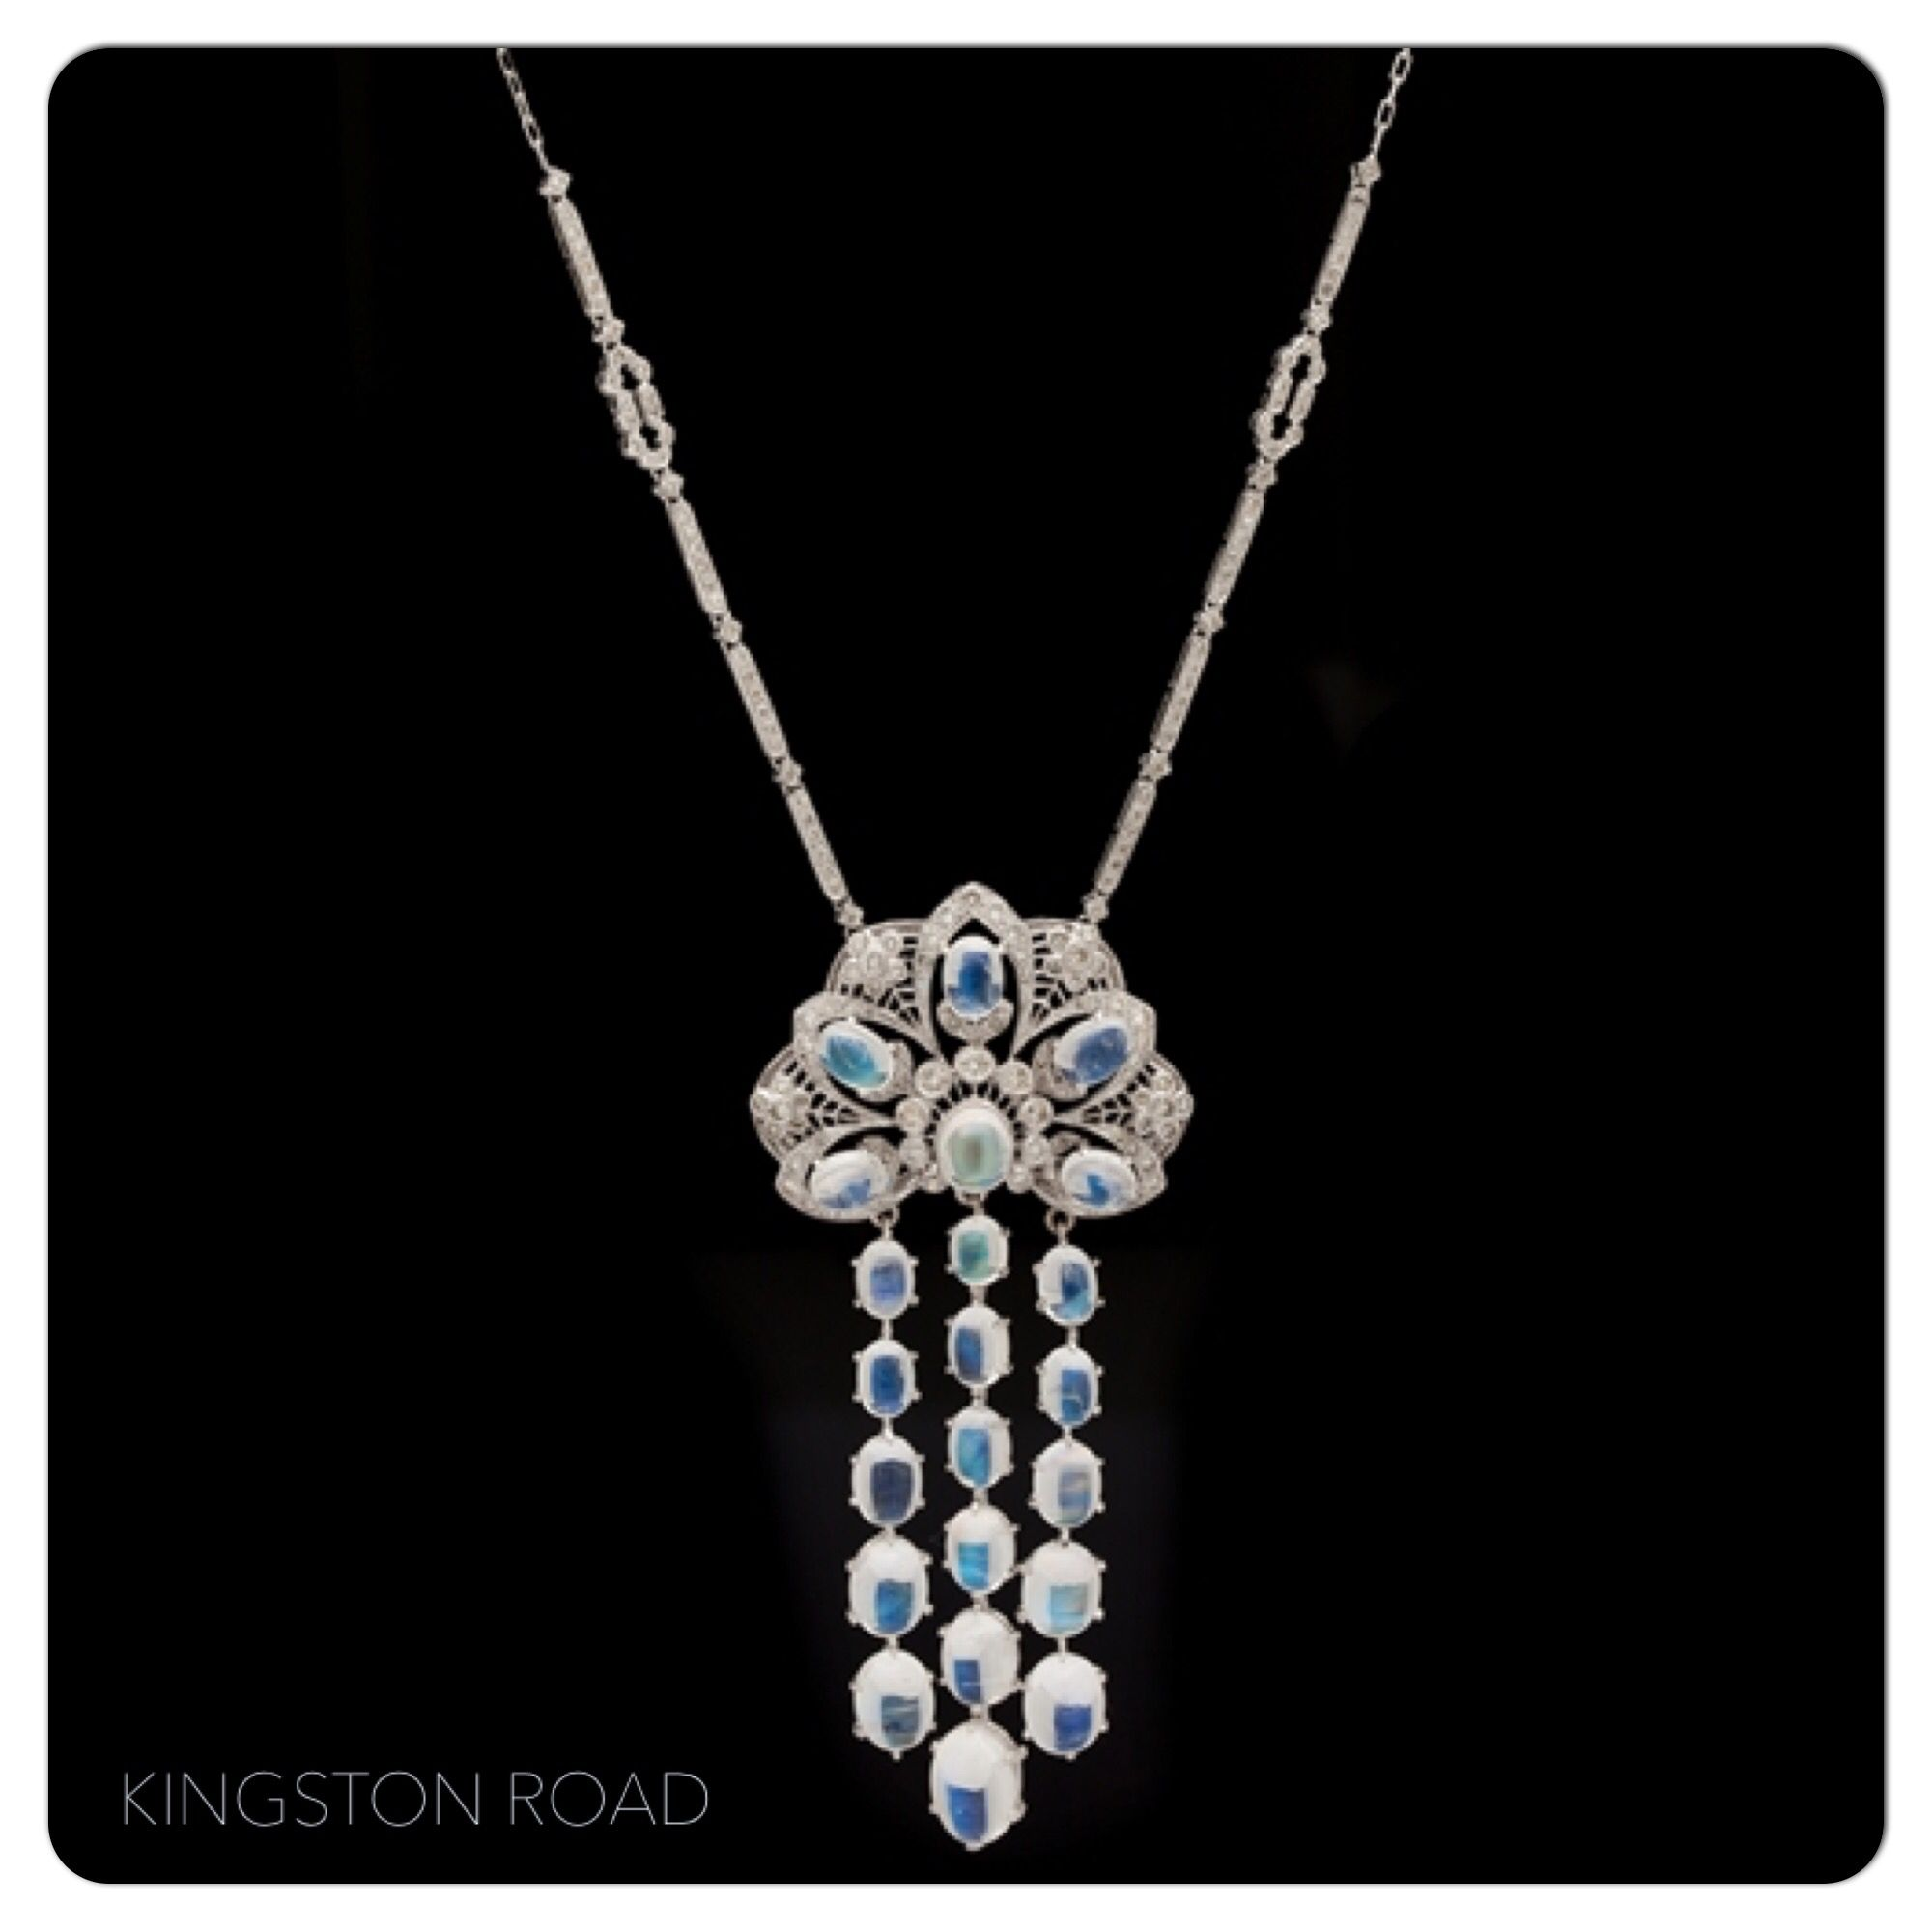 Ct moonstone u diamond lavaliere necklace custom kt necklace